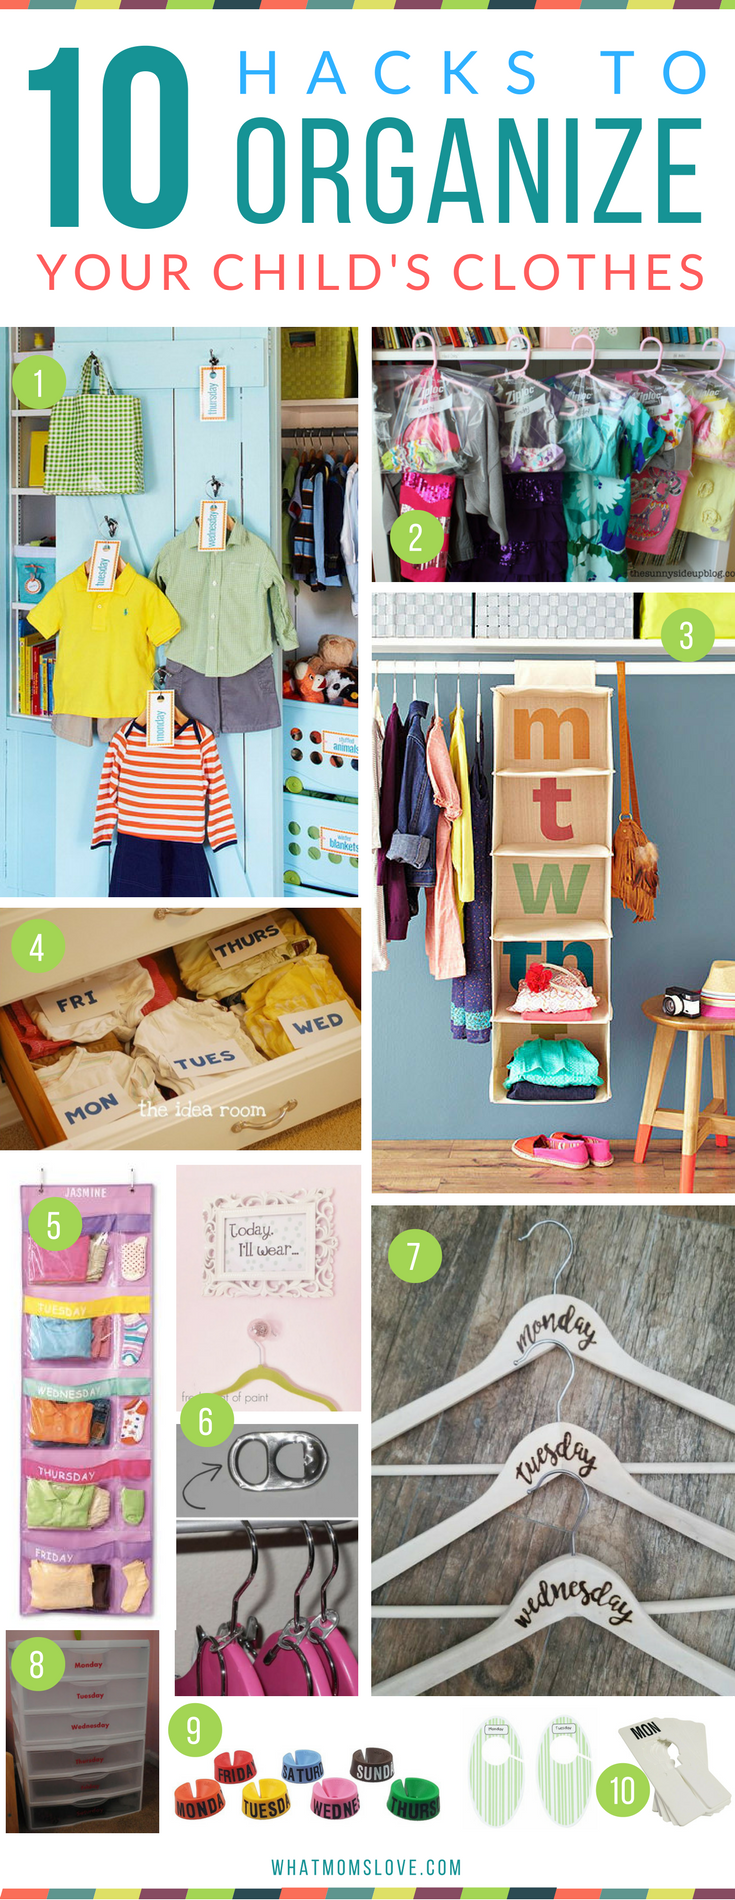 How to organize your kids closet, clothes and outfits | Hacks, Tips and Tricks for Organized, Stress-Free Mornings with kids